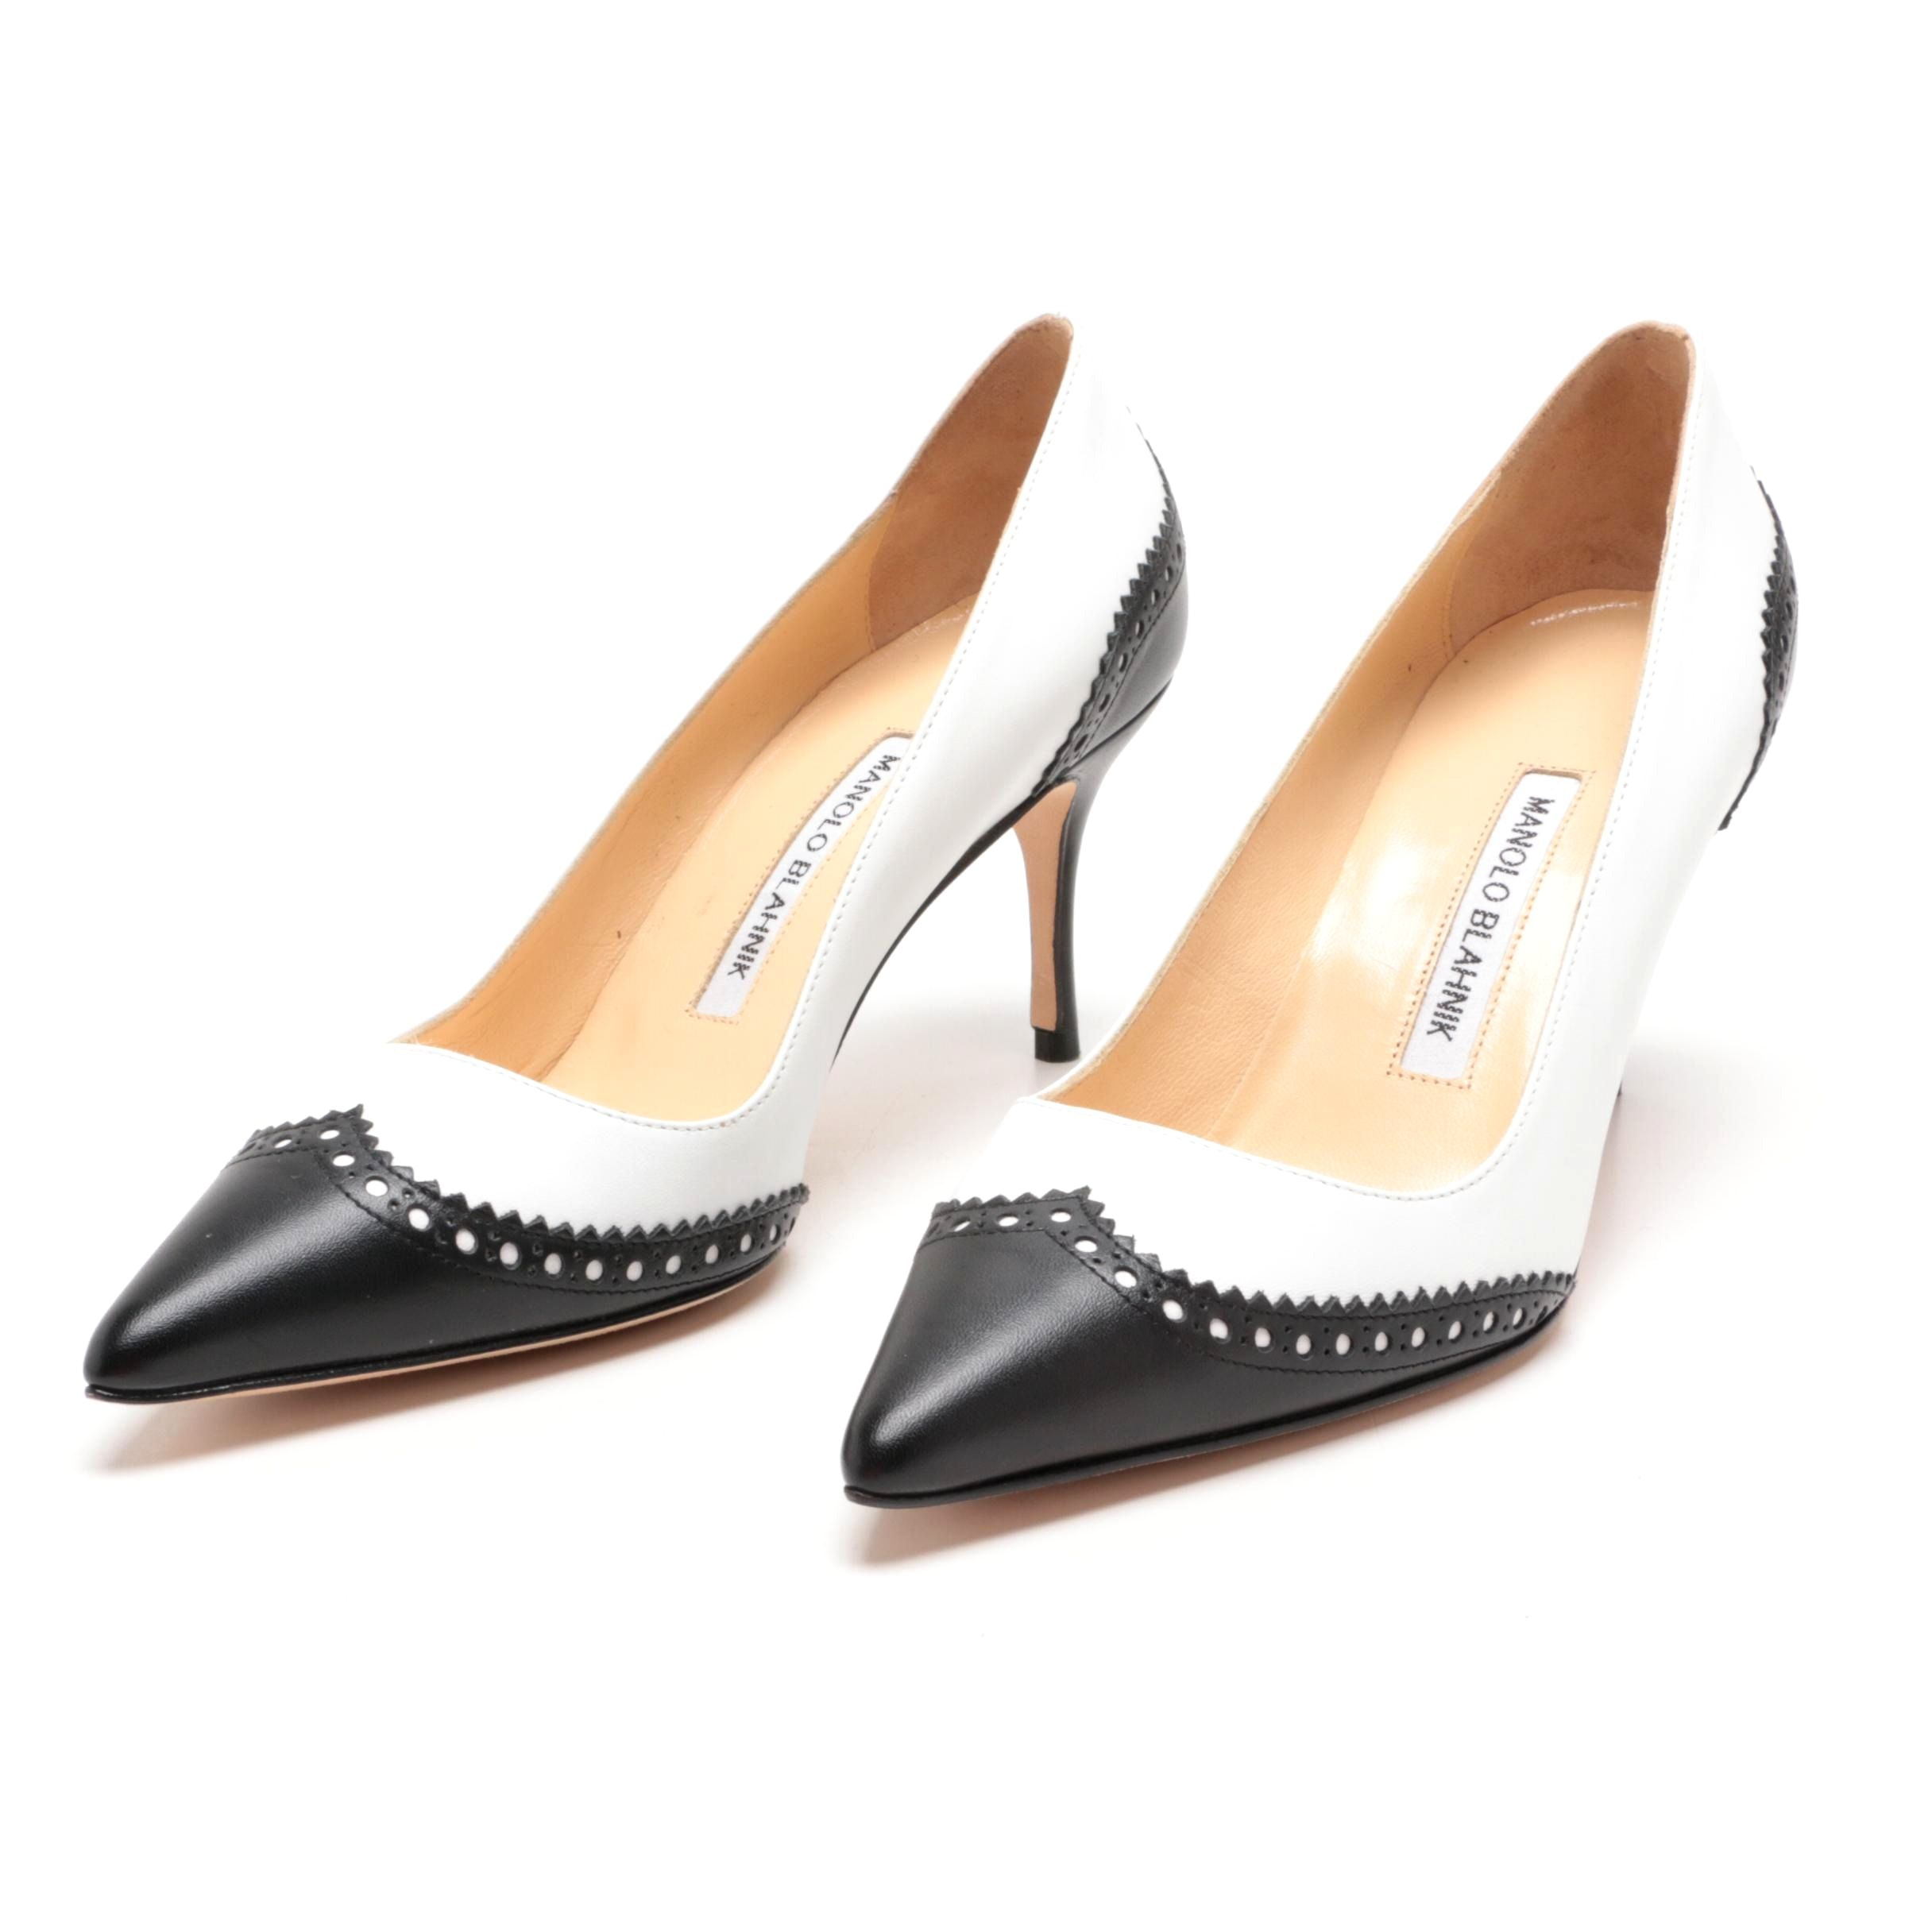 Manolo Blahnik White and Black Leather Wingtip Spectator Pumps